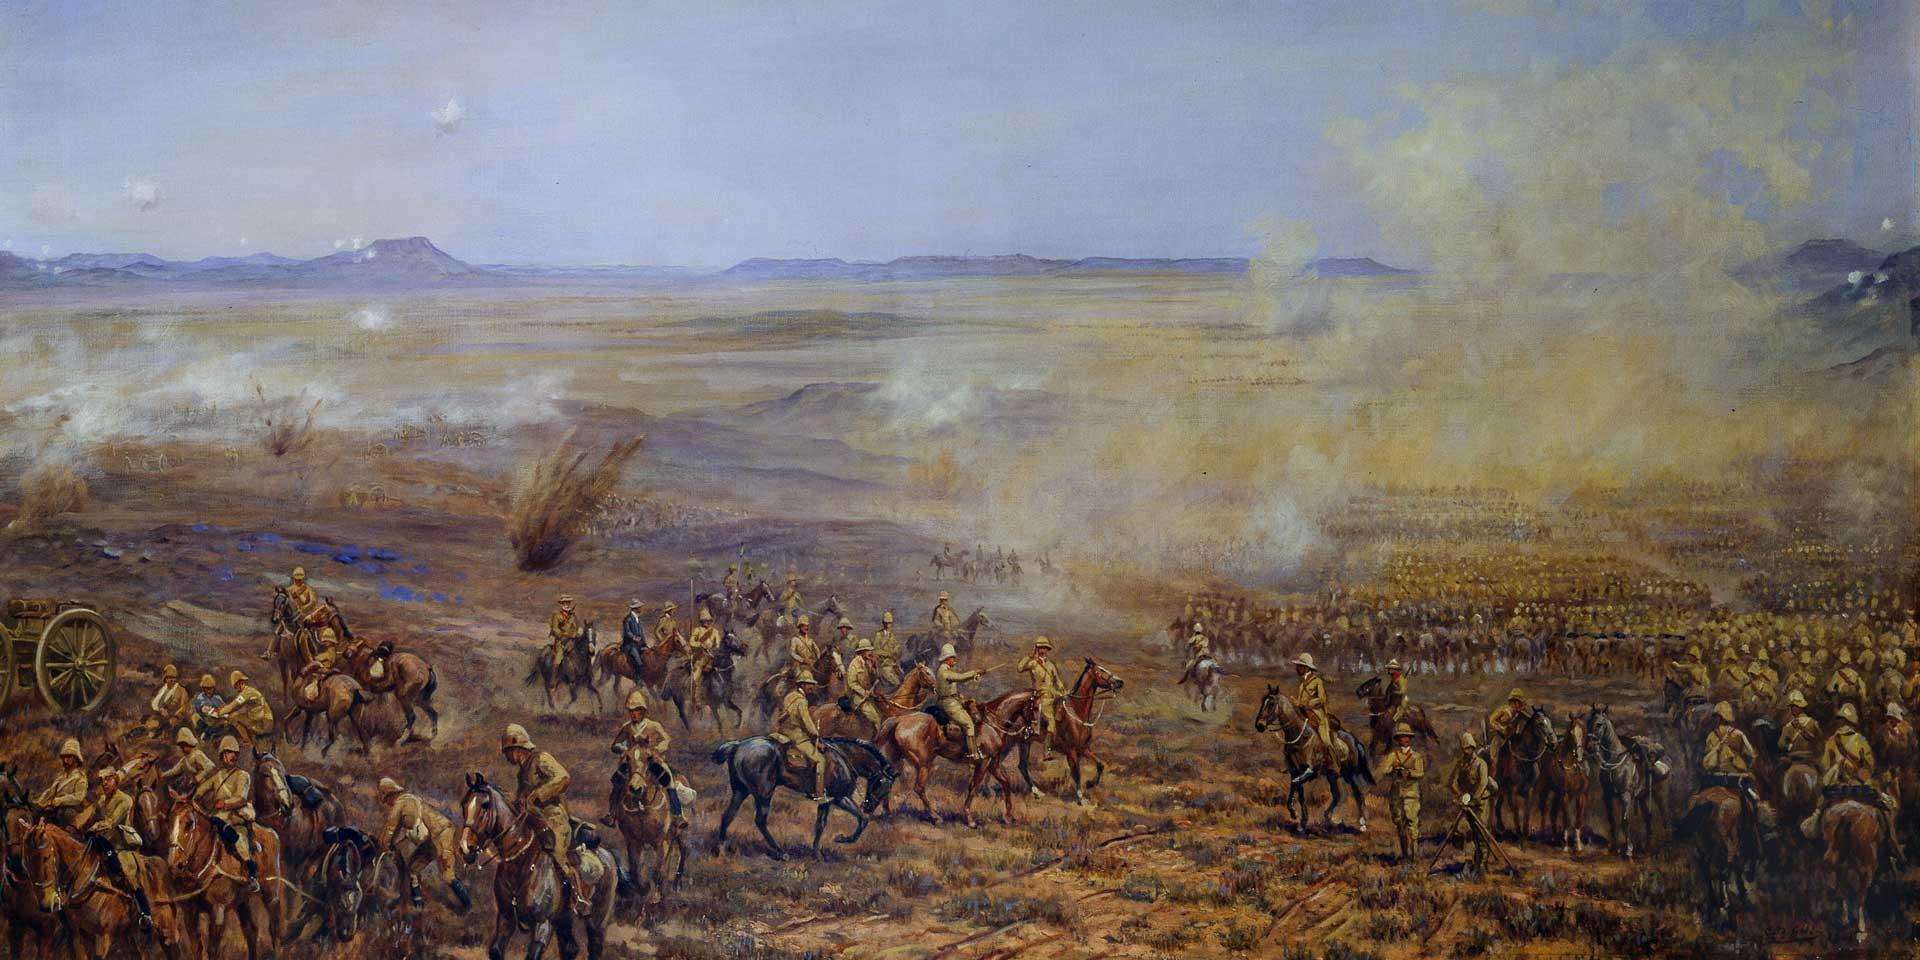 The advance of Lieutenant-General John French's Cavalry Brigade to relieve Kimberley, 13 February 1900